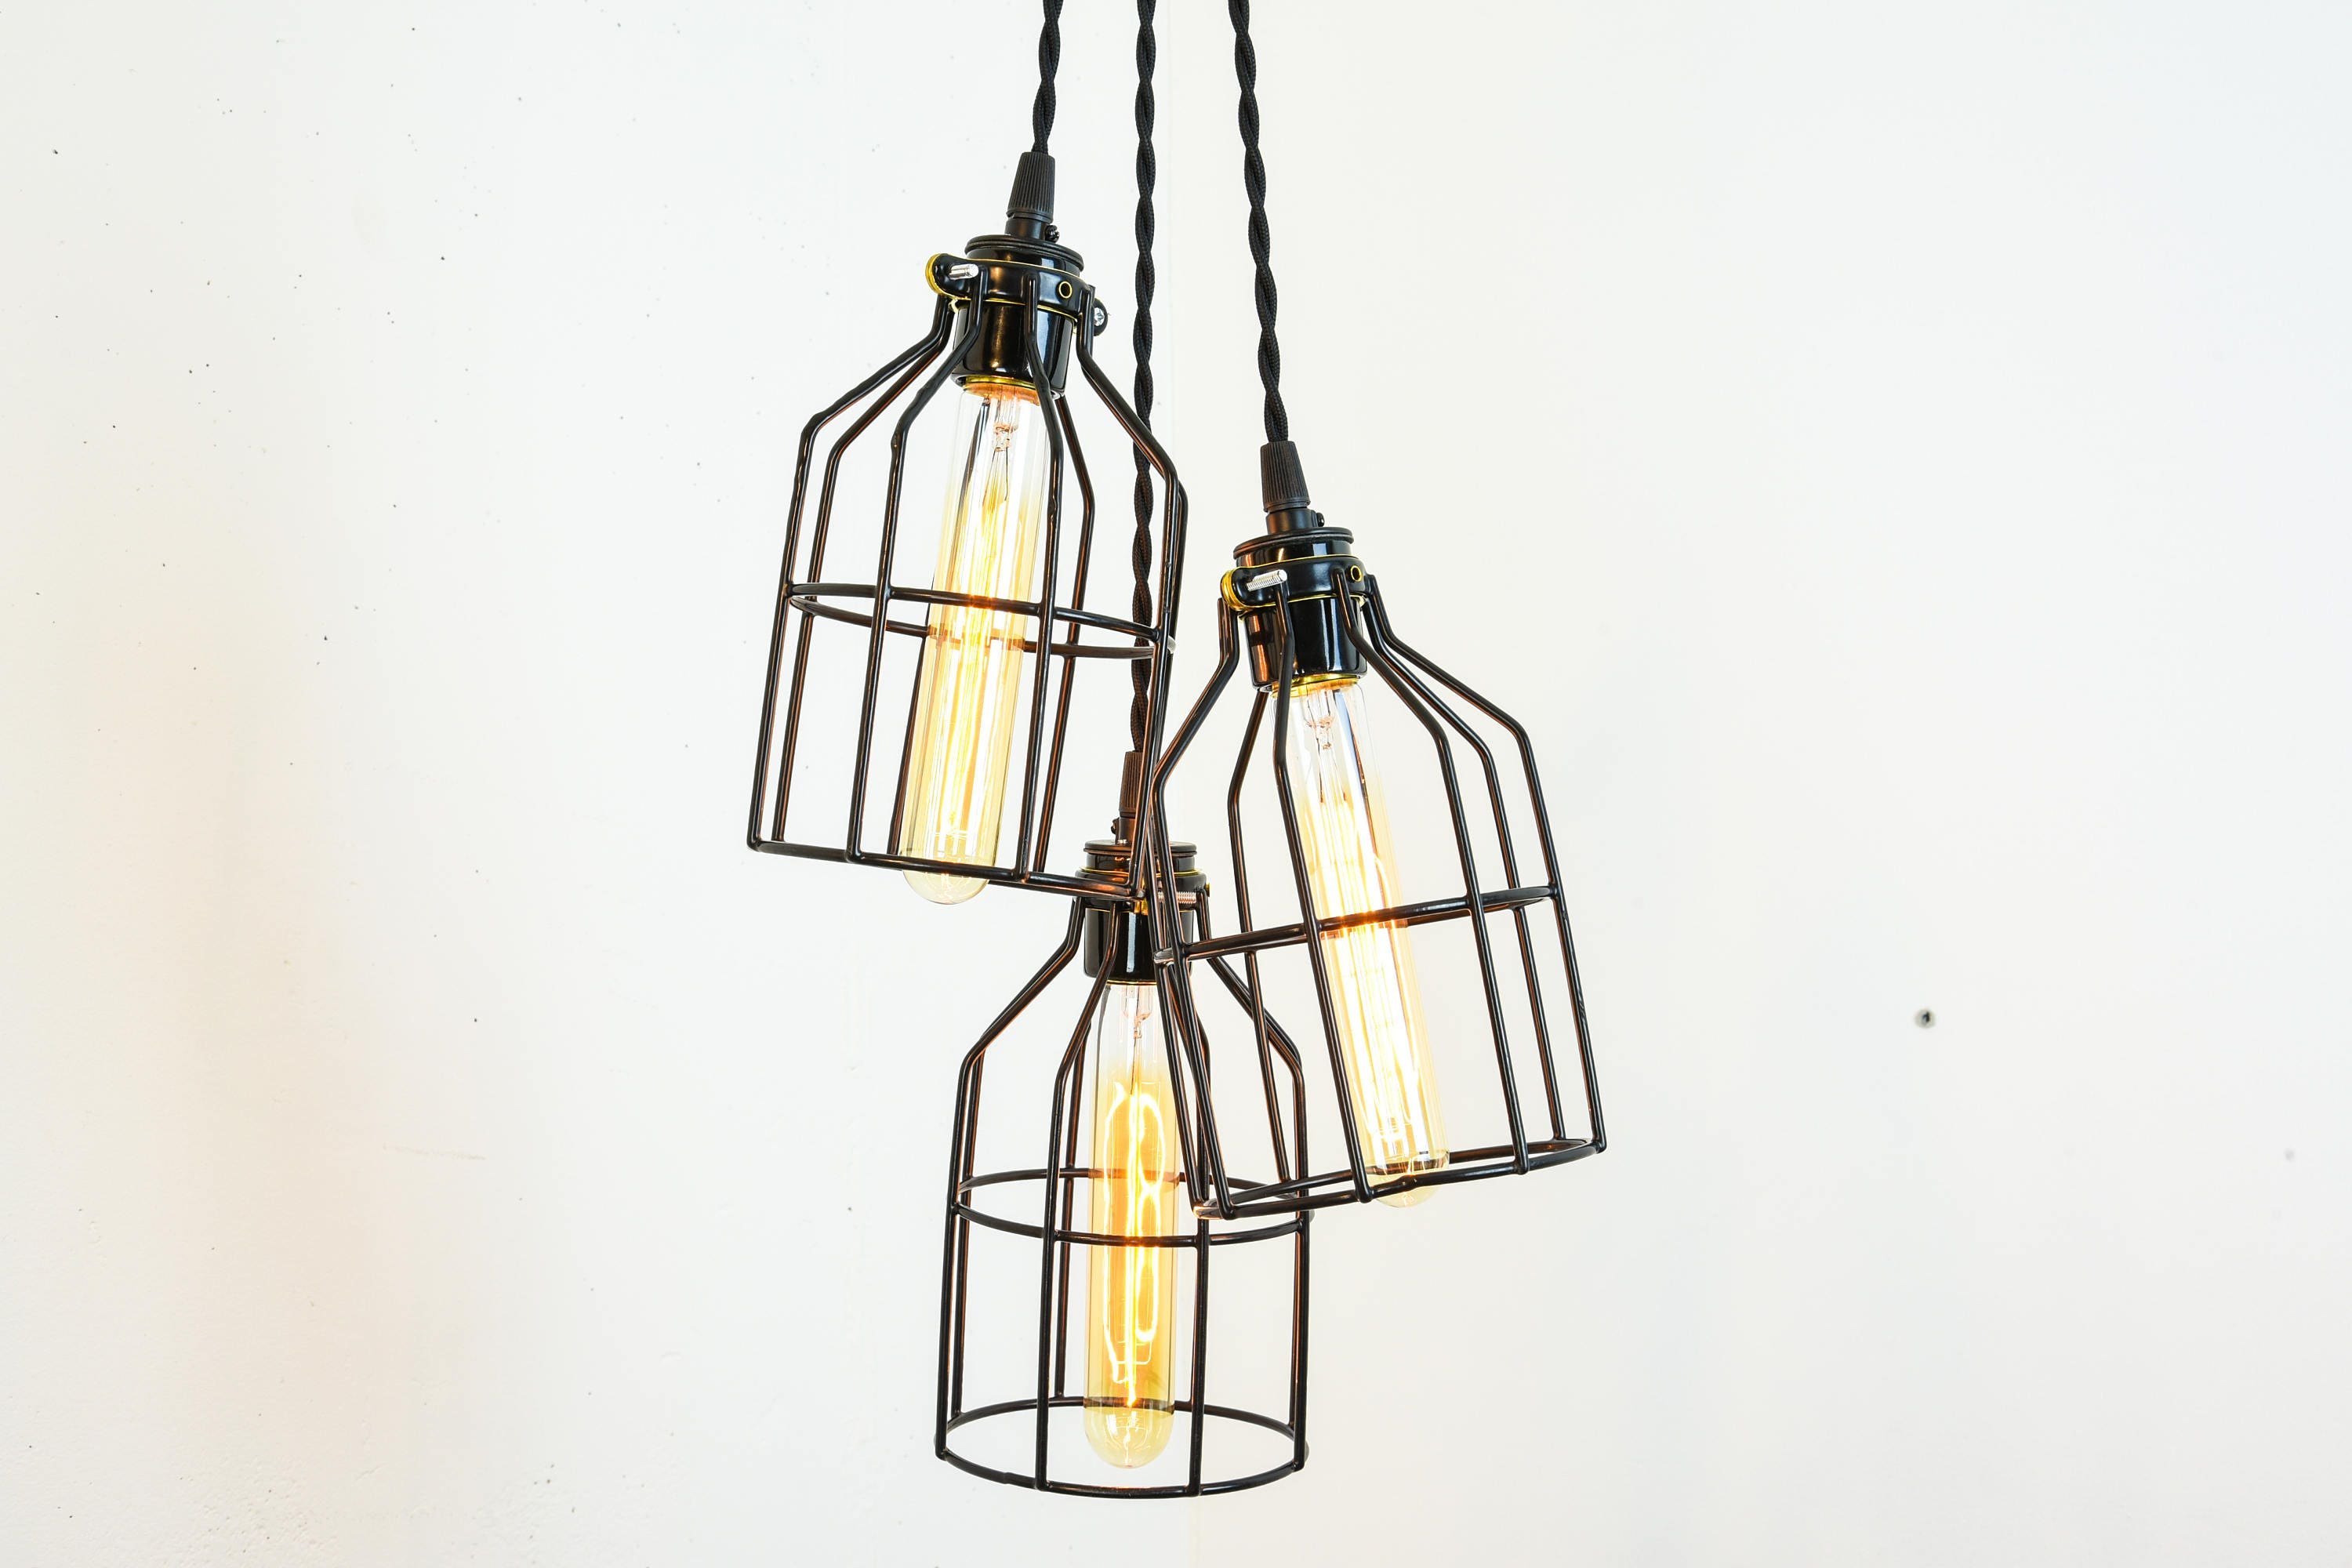 light edison lights ceiling lighting pendant fullxfull il chandeliers bulb industrial cage rustic lamp listing jstr